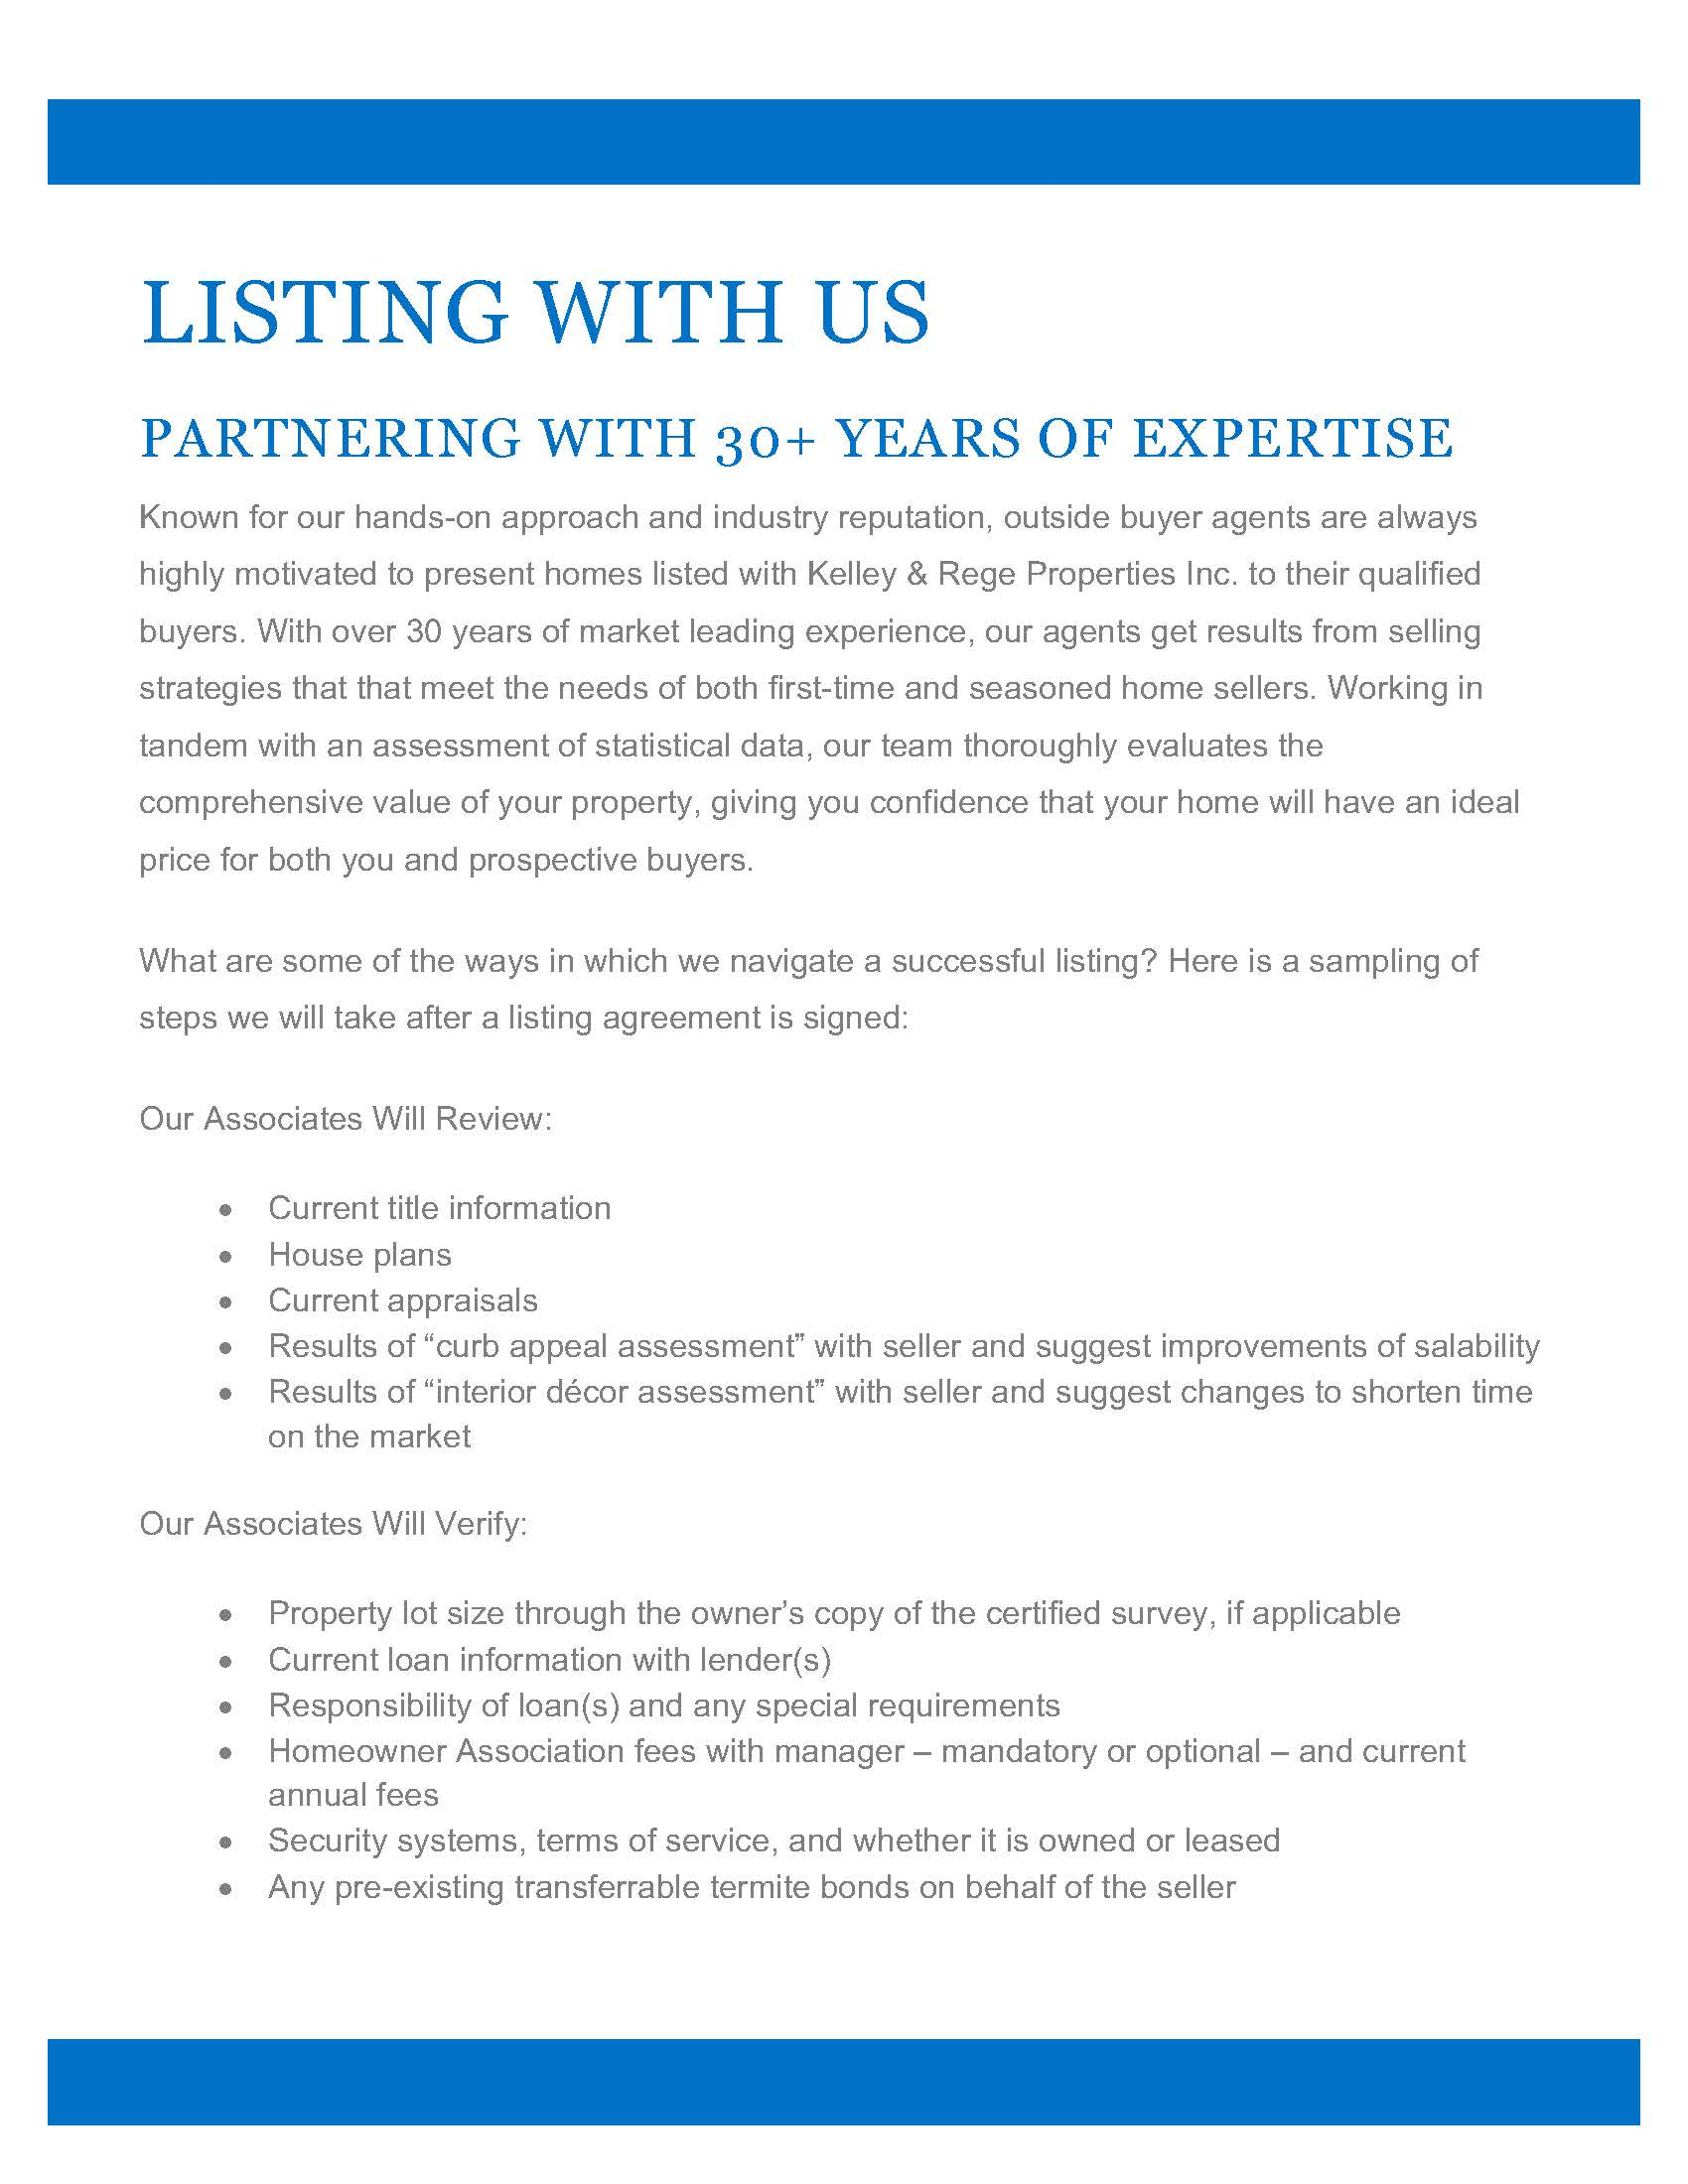 pre-listing documents view